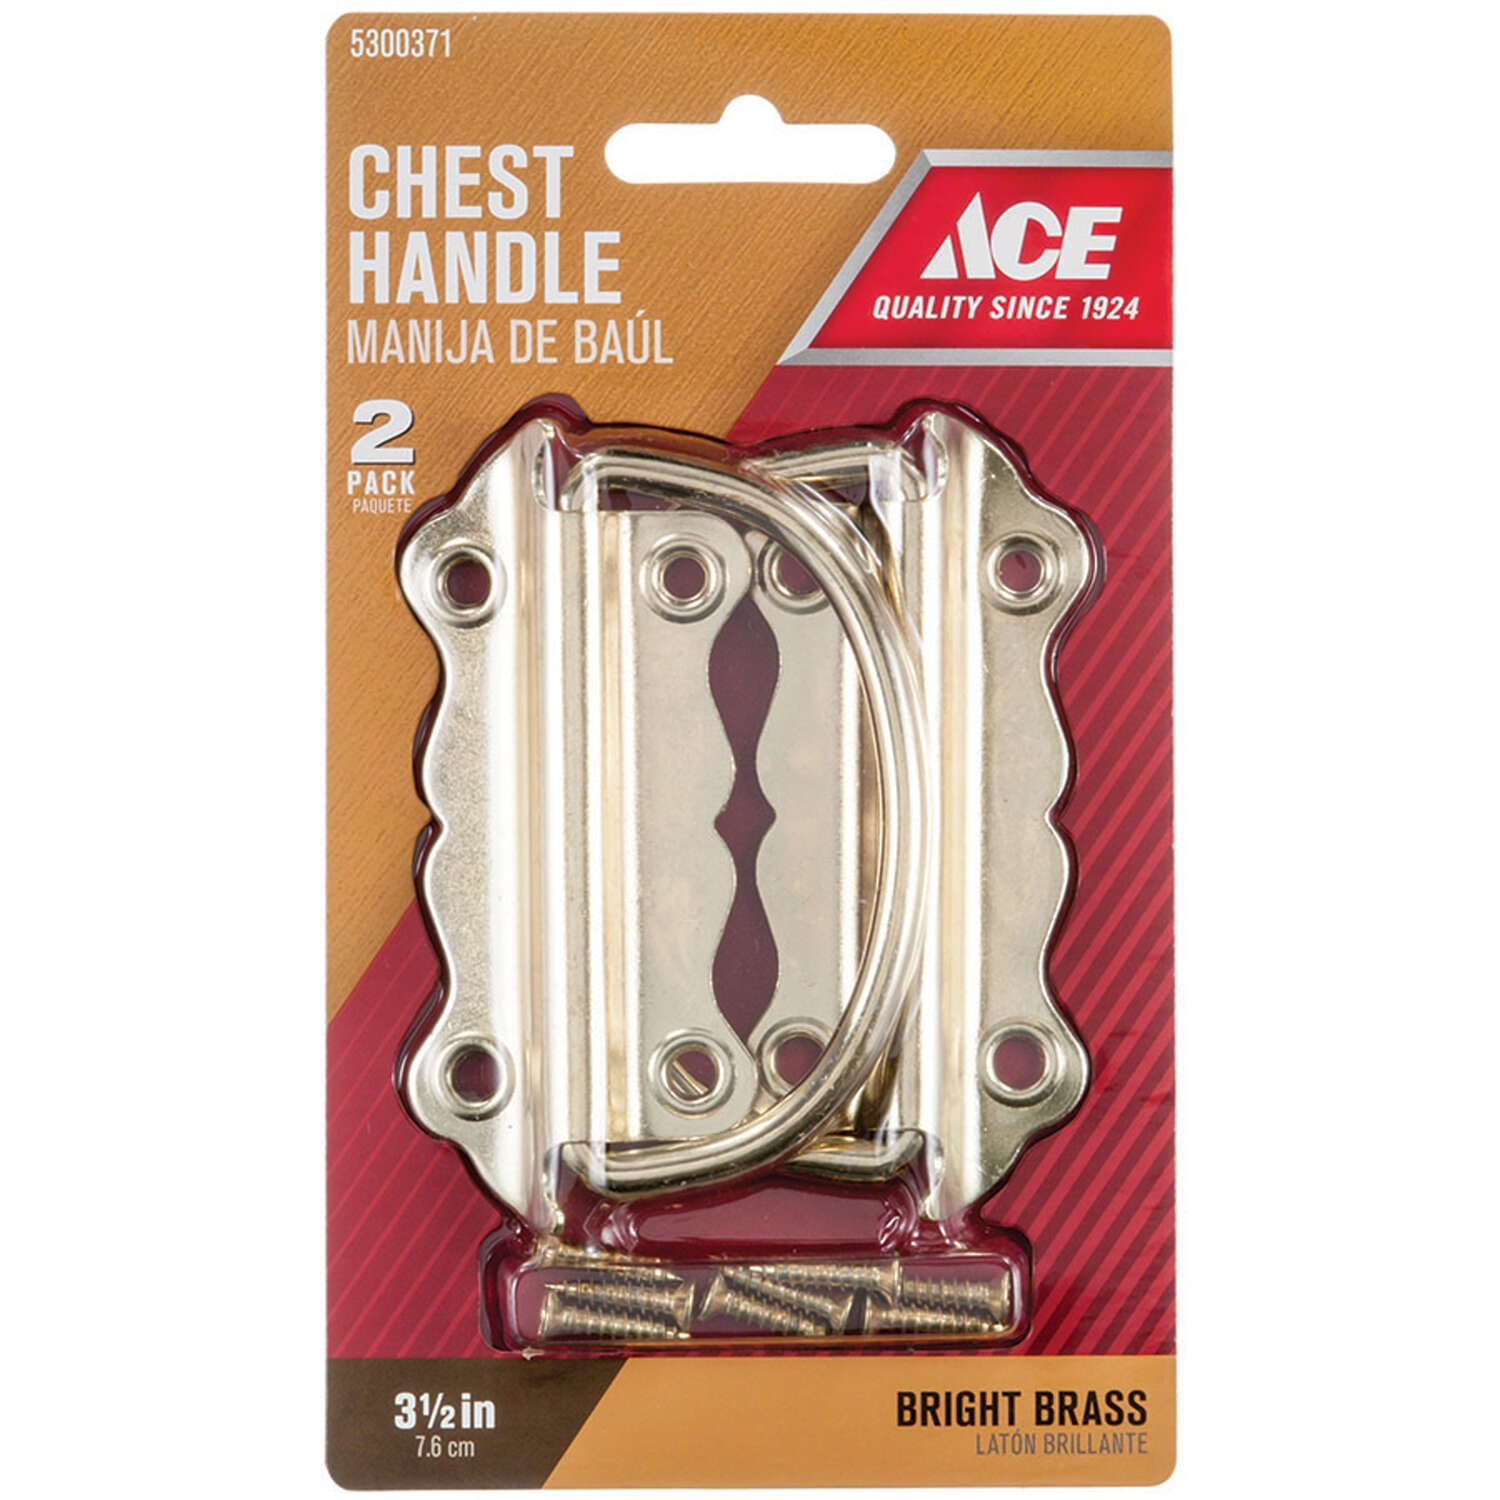 Ace  Bright  3-1/2 in. 3-1/2 in. L 3-1/2 in. 2 pk Chest Handle  Brass